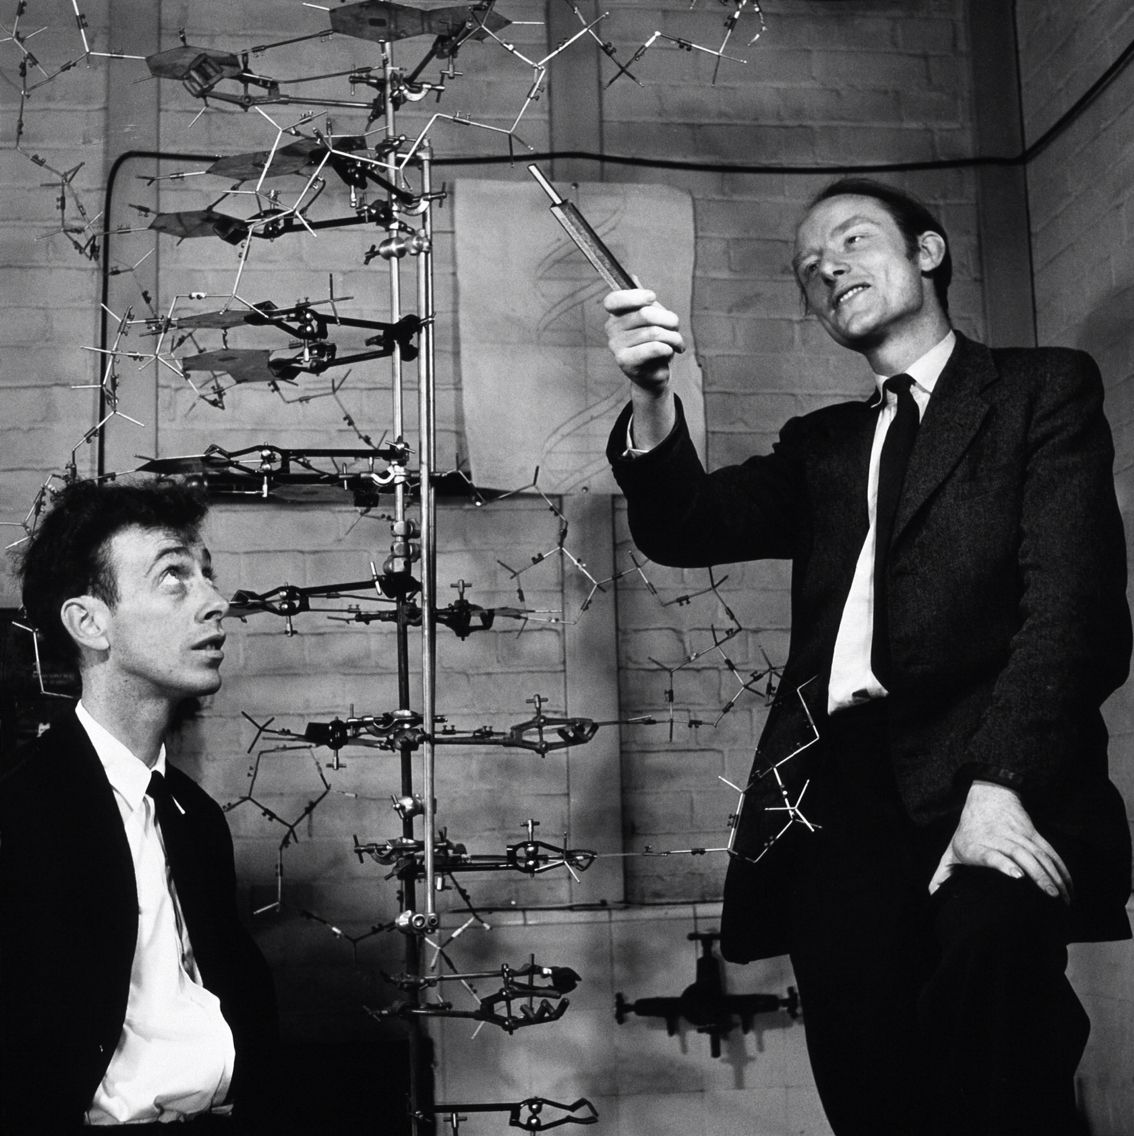 Watson And Crick With The First 3d Dna Model In Which They Invented Dna Model James Watson Rosalind Franklin